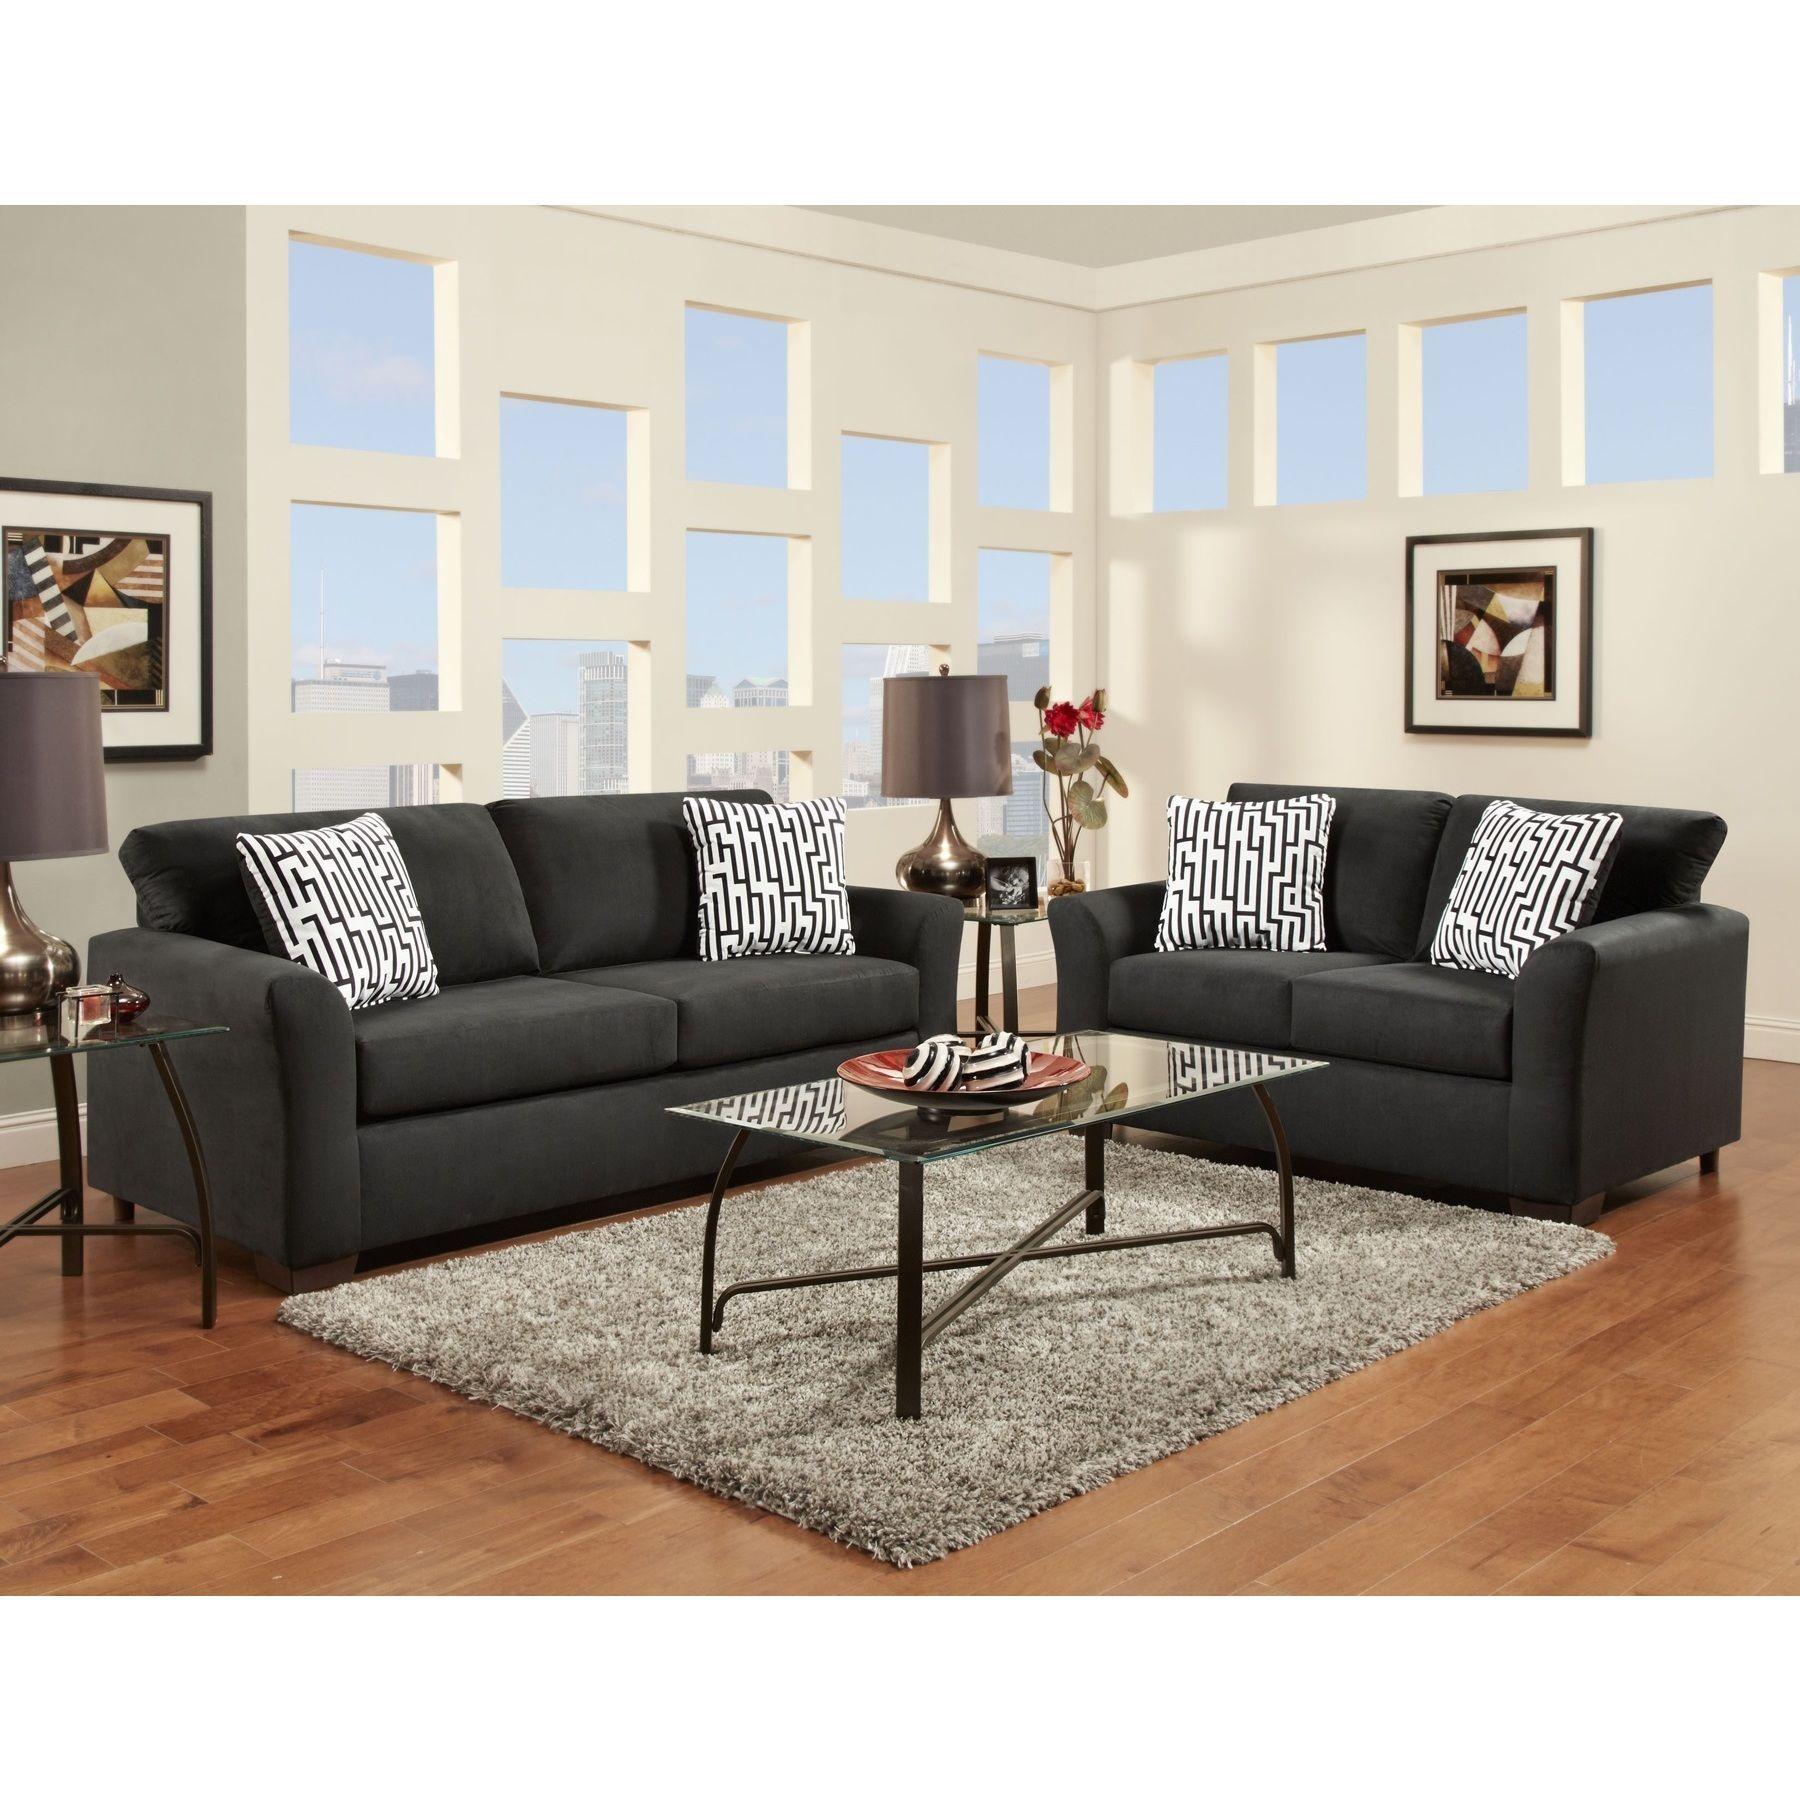 Mazemic Black Microfiber 2 Seater Sofa And Loveseat Set With Pillows